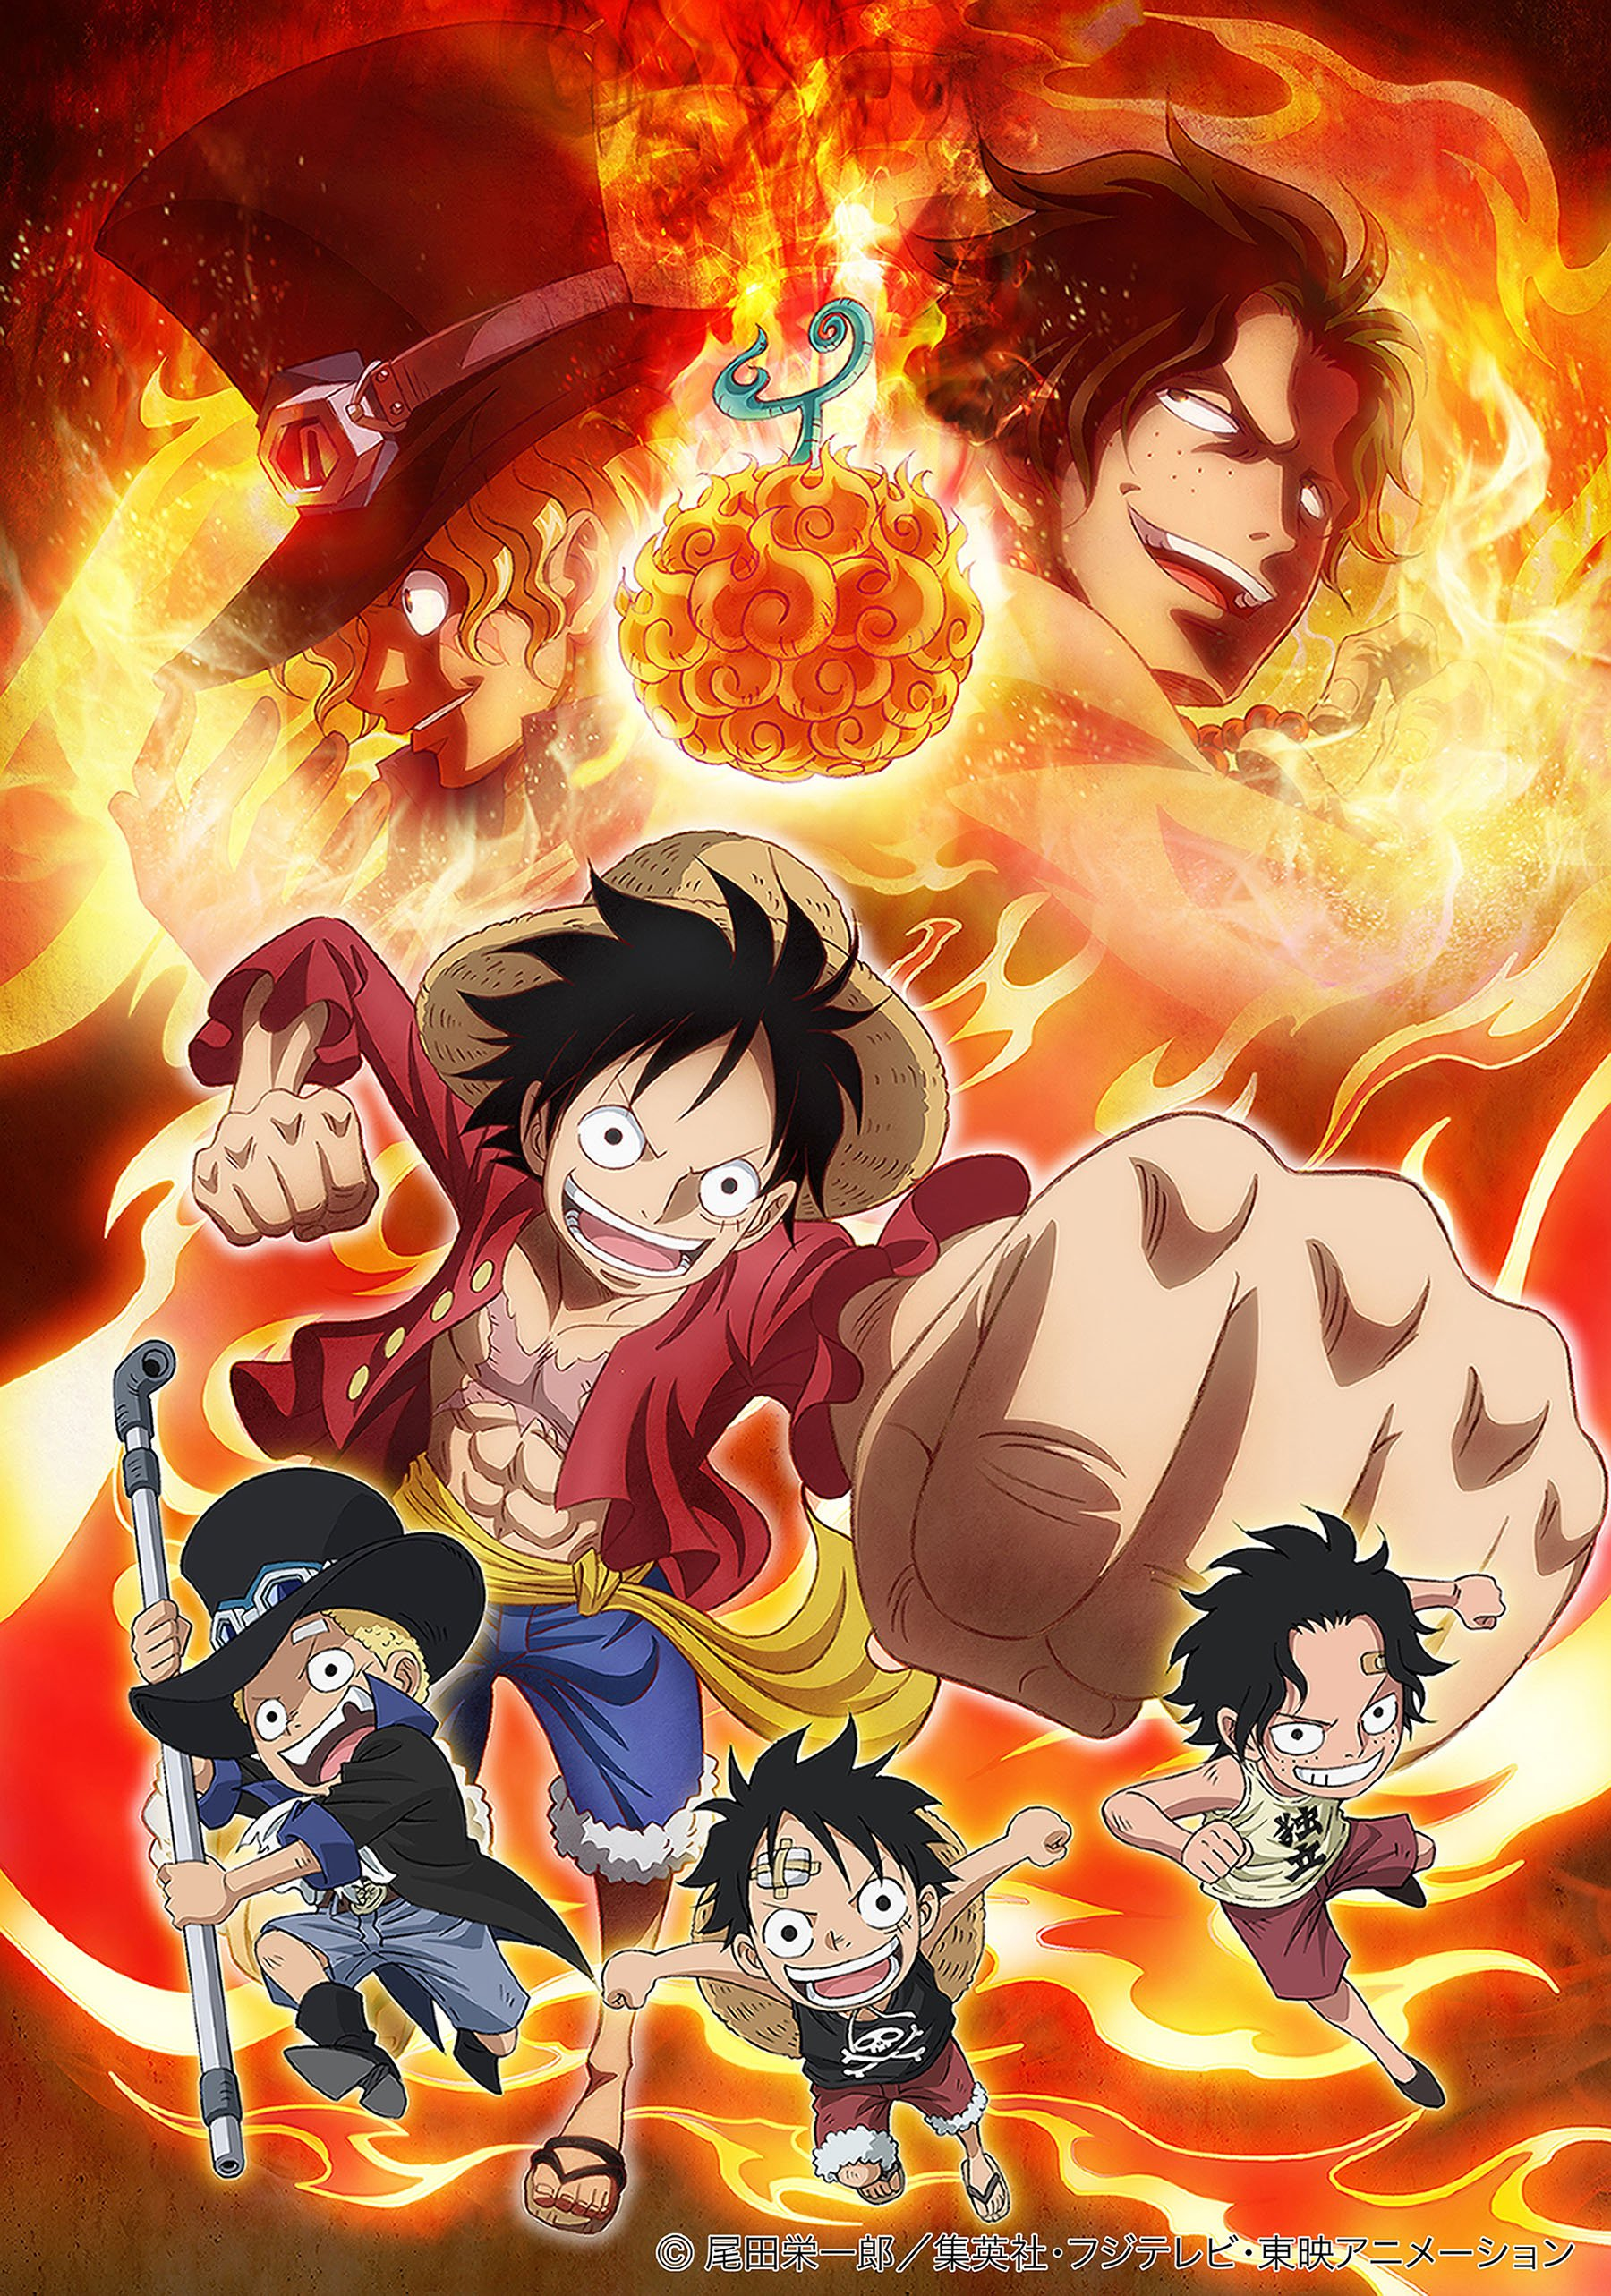 Live Wallpaper Anime One Piece